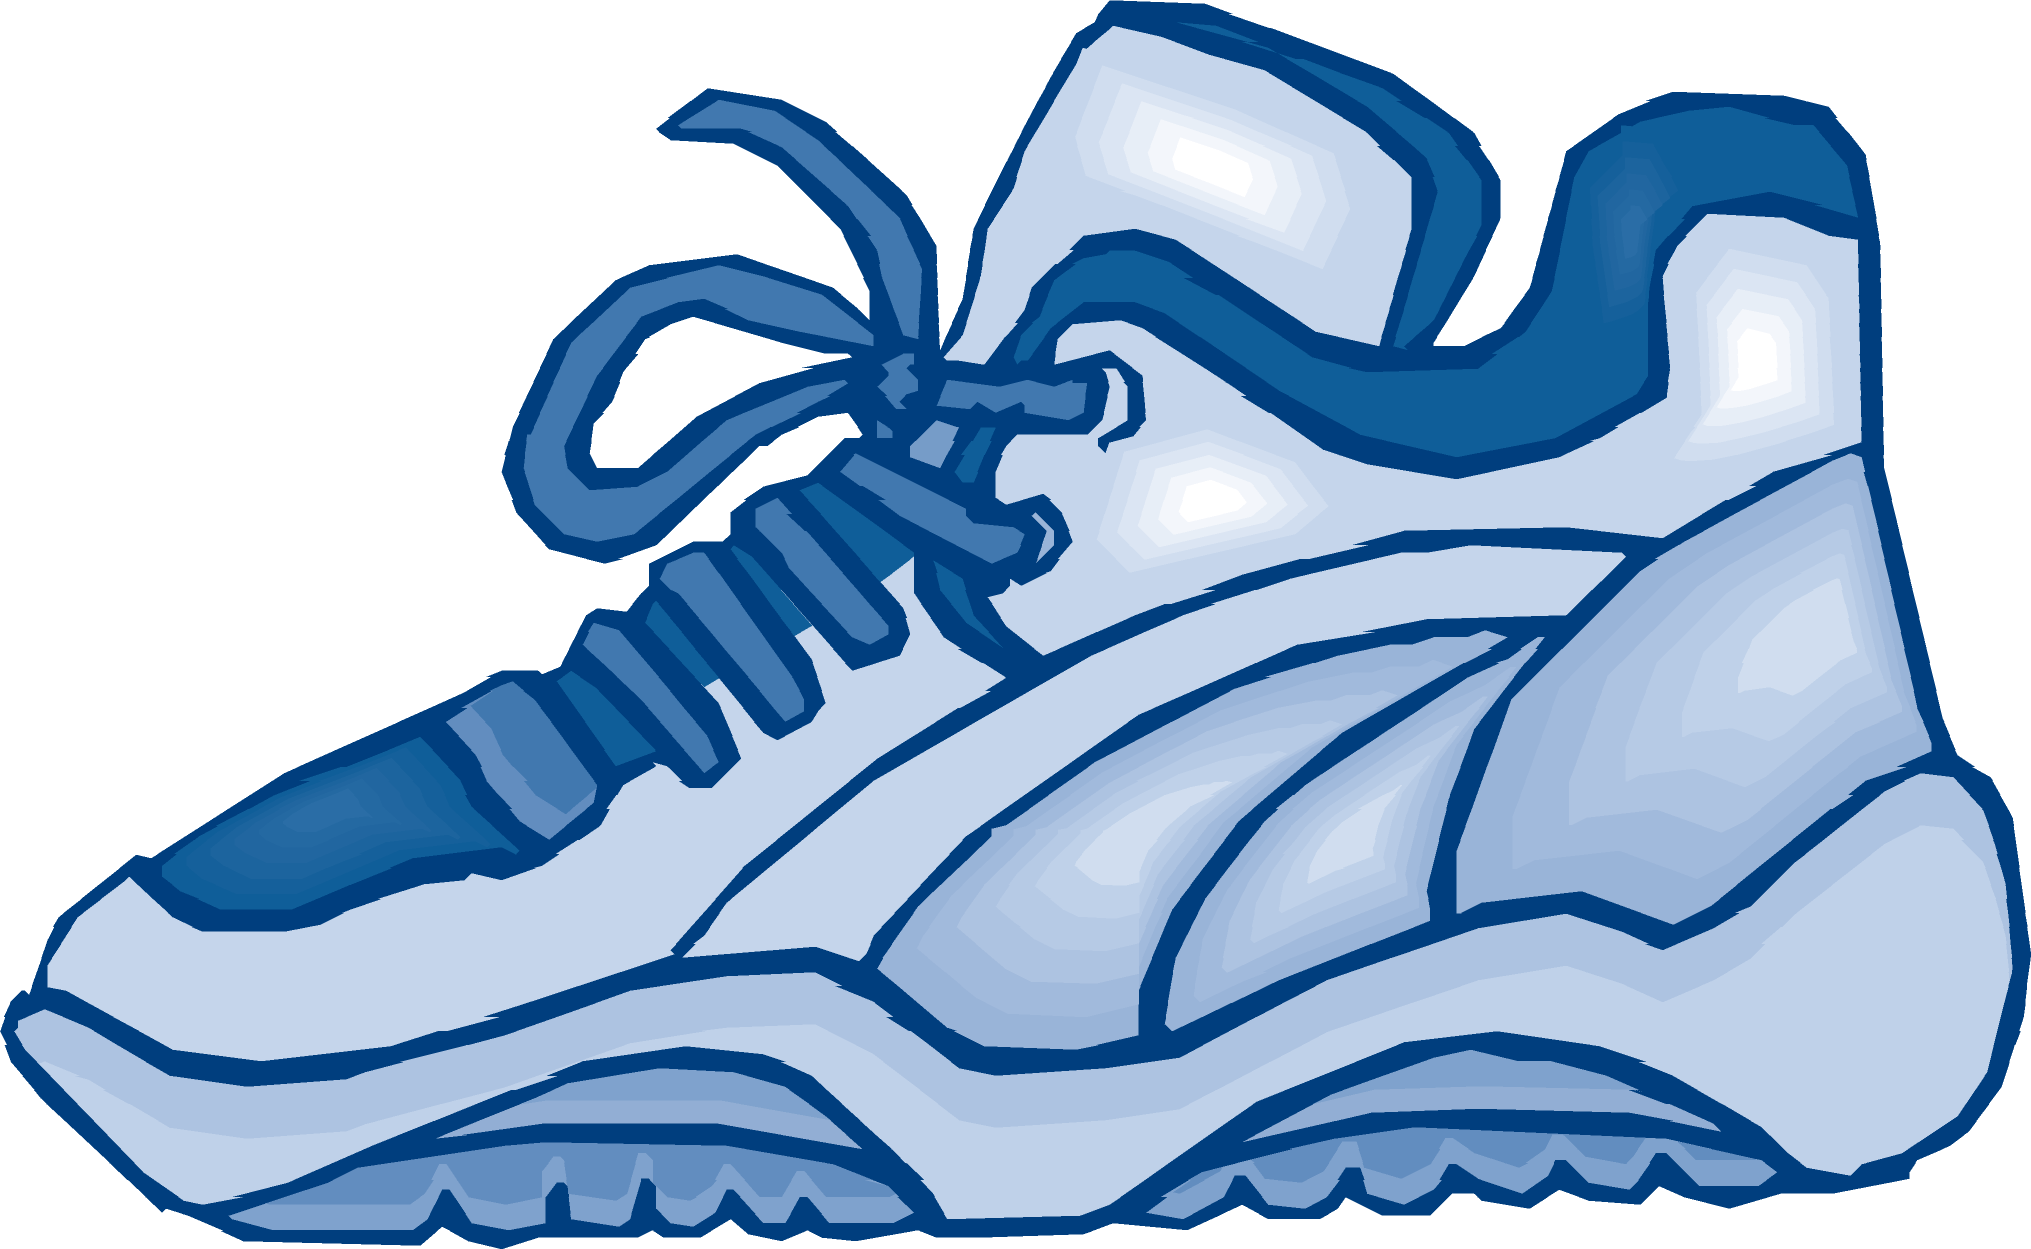 Sneakers pictures clip art images